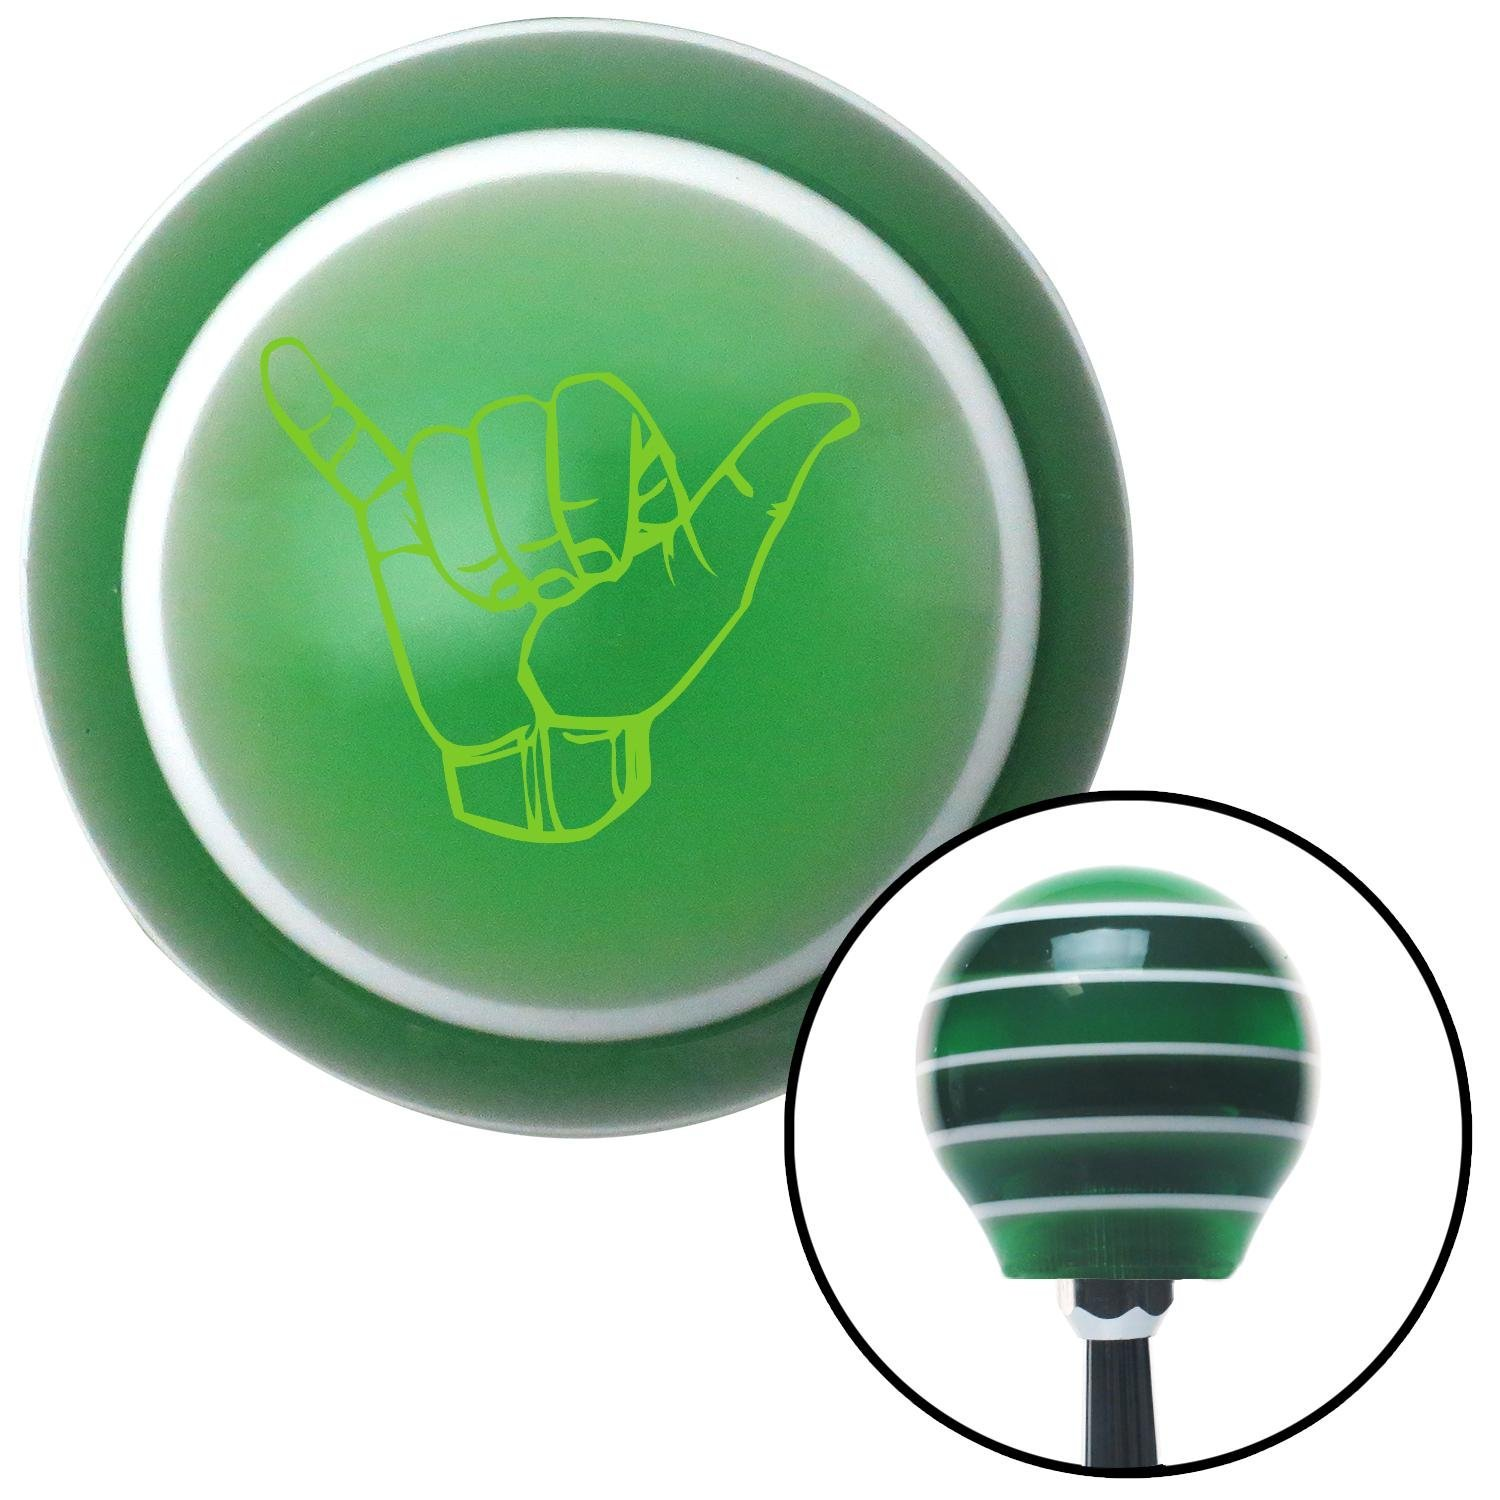 American Shifter 122820 Green Stripe Shift Knob with M16 x 1.5 Insert Green Hang Loose w//Detailed Hand